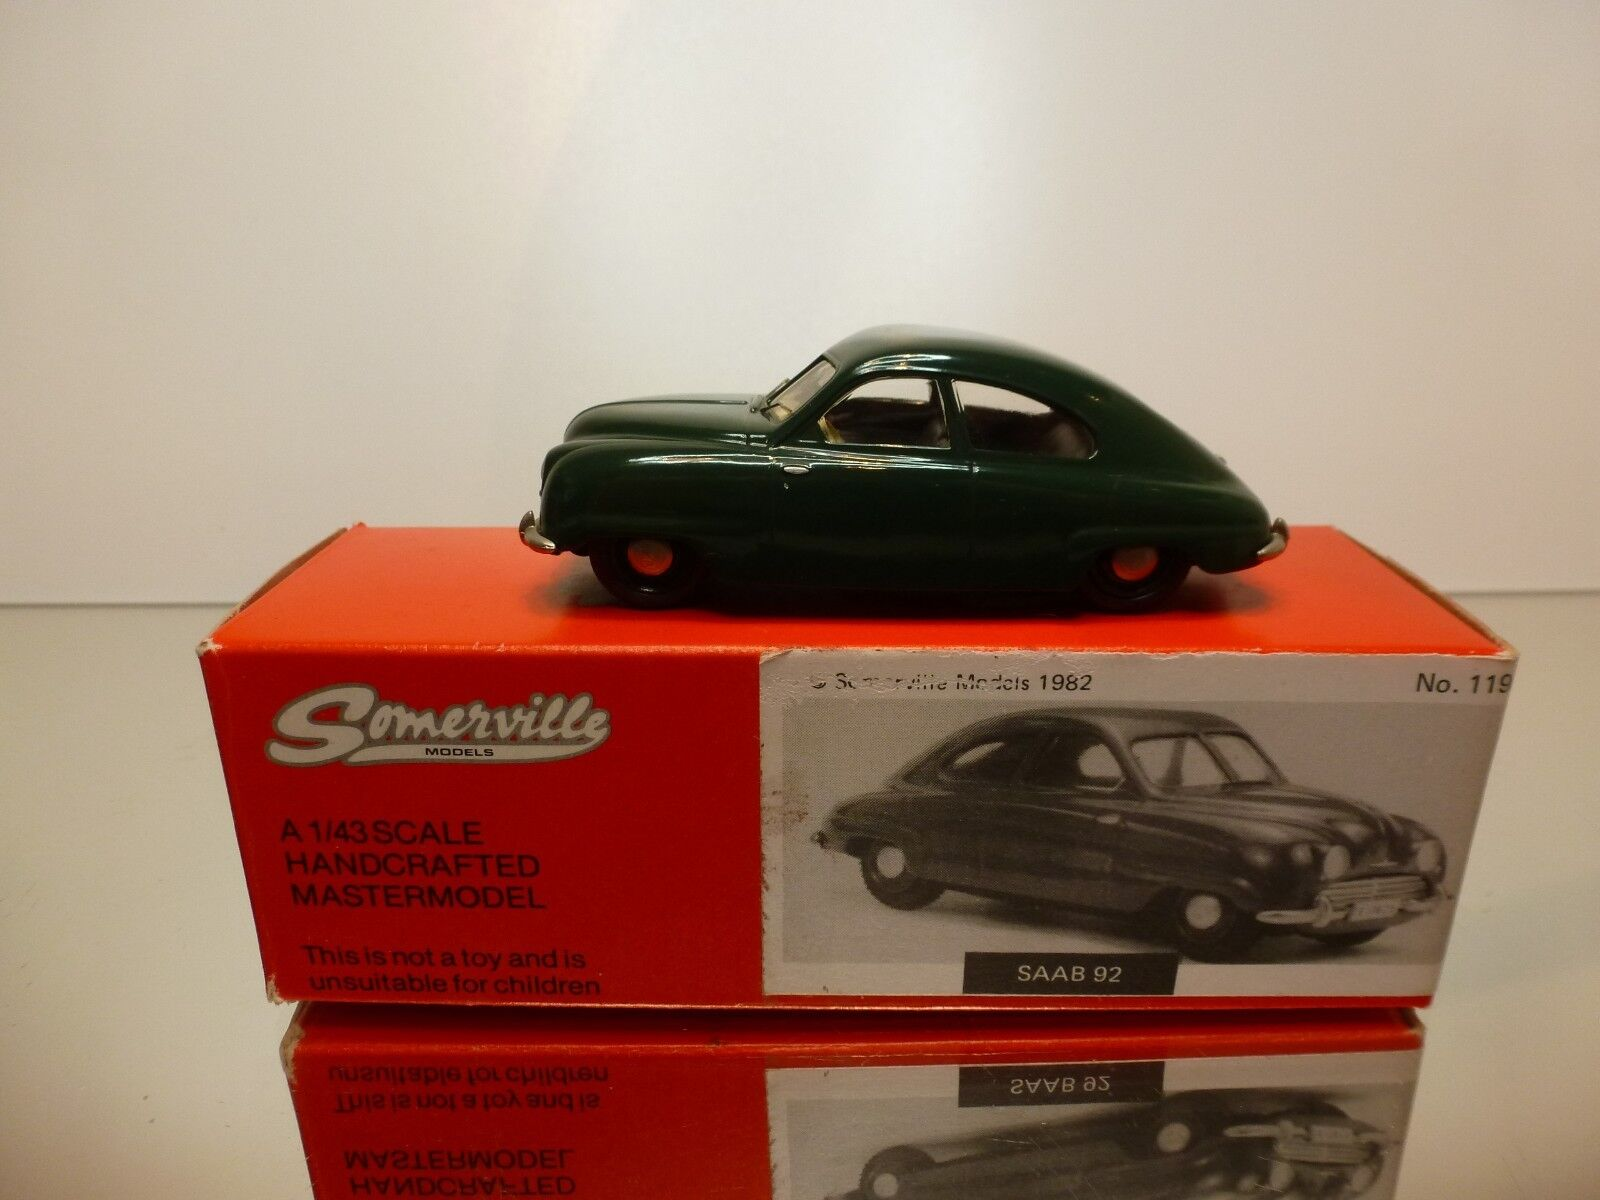 SOMMERVILLE 119 HANDCRAFTED SAAB 92 1950 - GREEN 1 43 RARE - VERY GOOD IN BOX